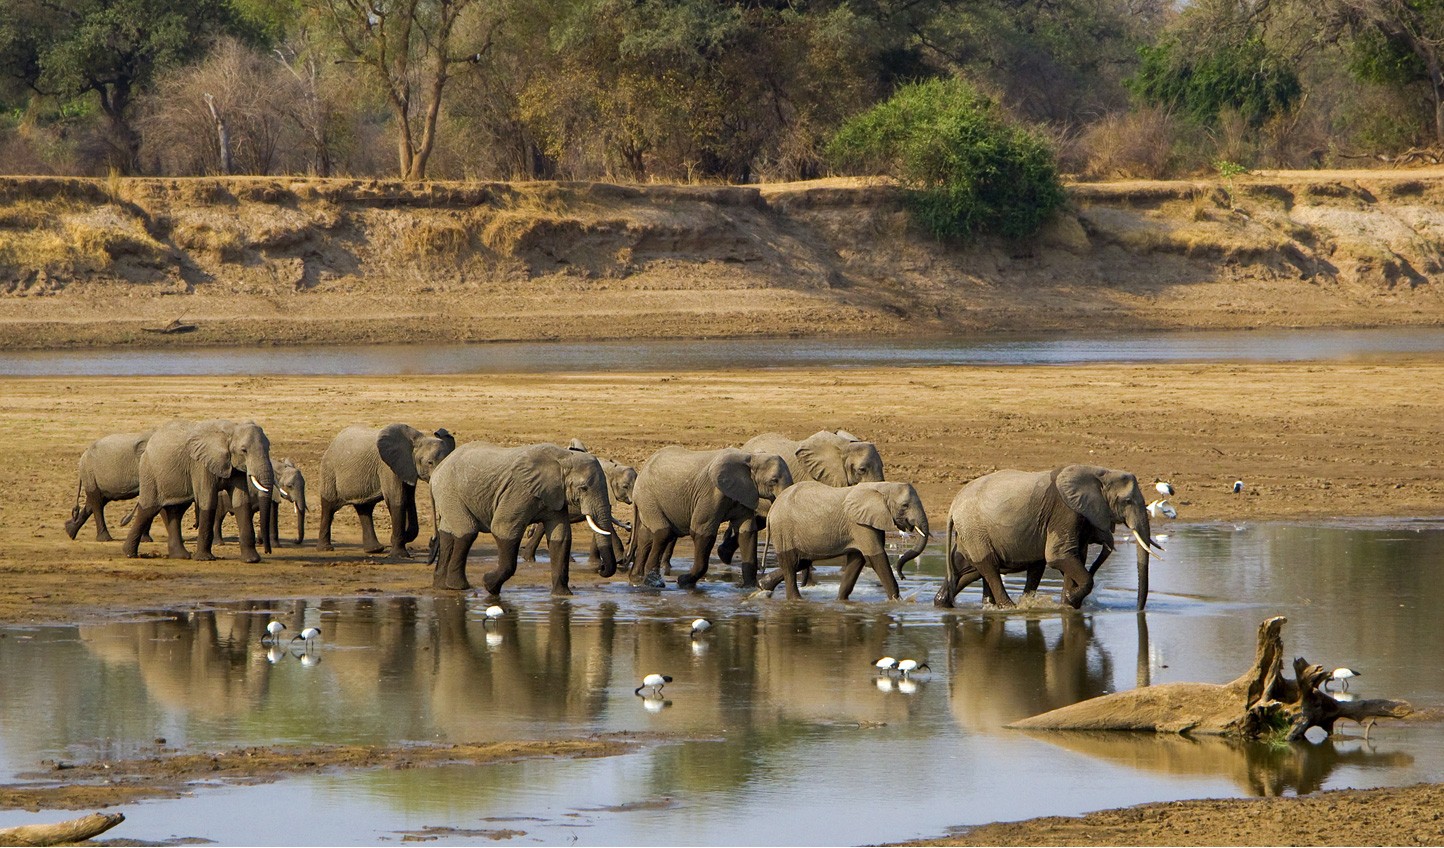 Witness an elephant river crossing for yourself